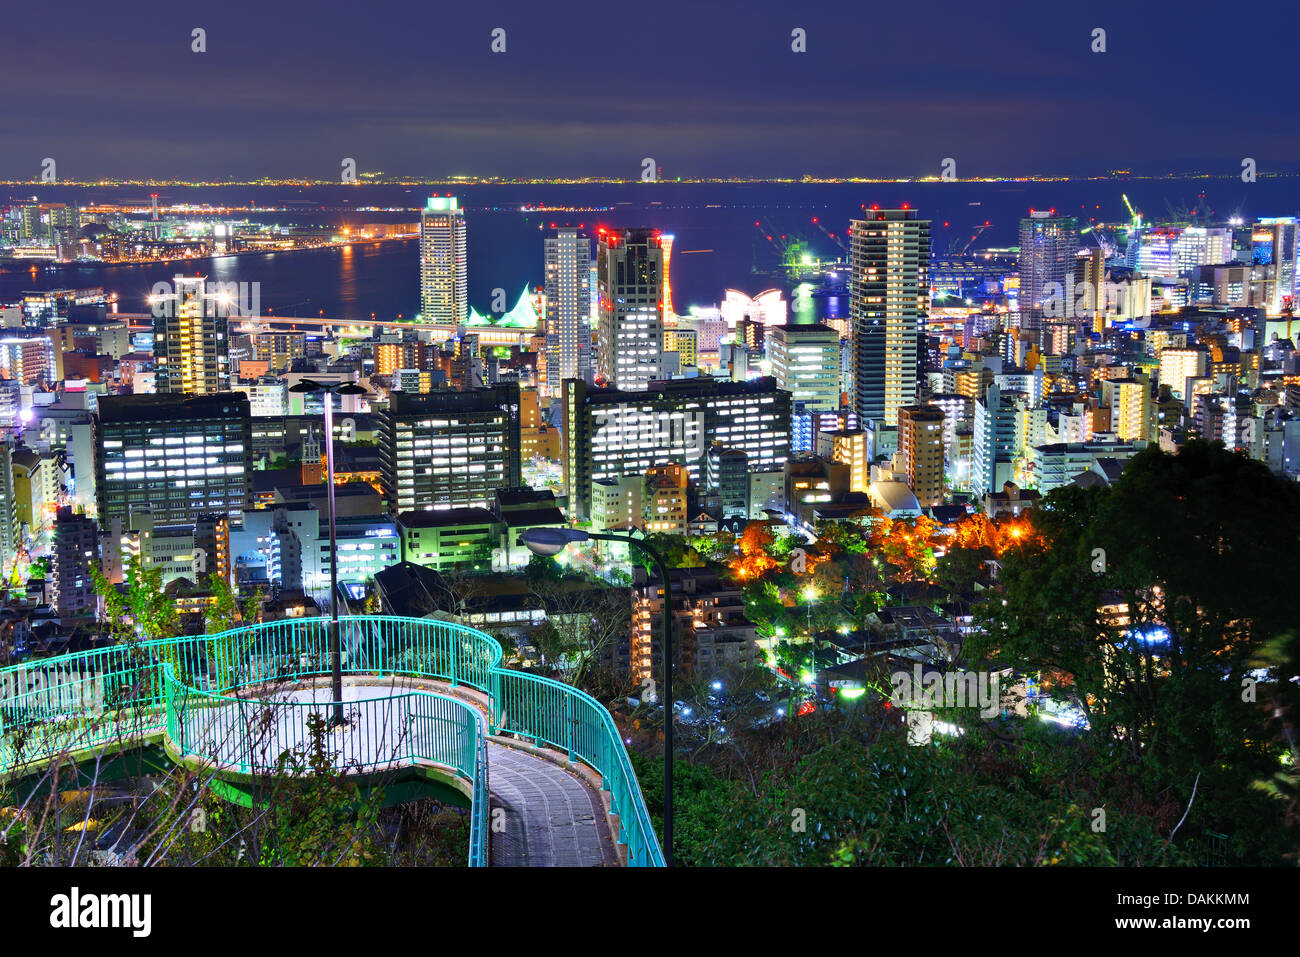 Kobe, Japan cityscape at night. - Stock Image